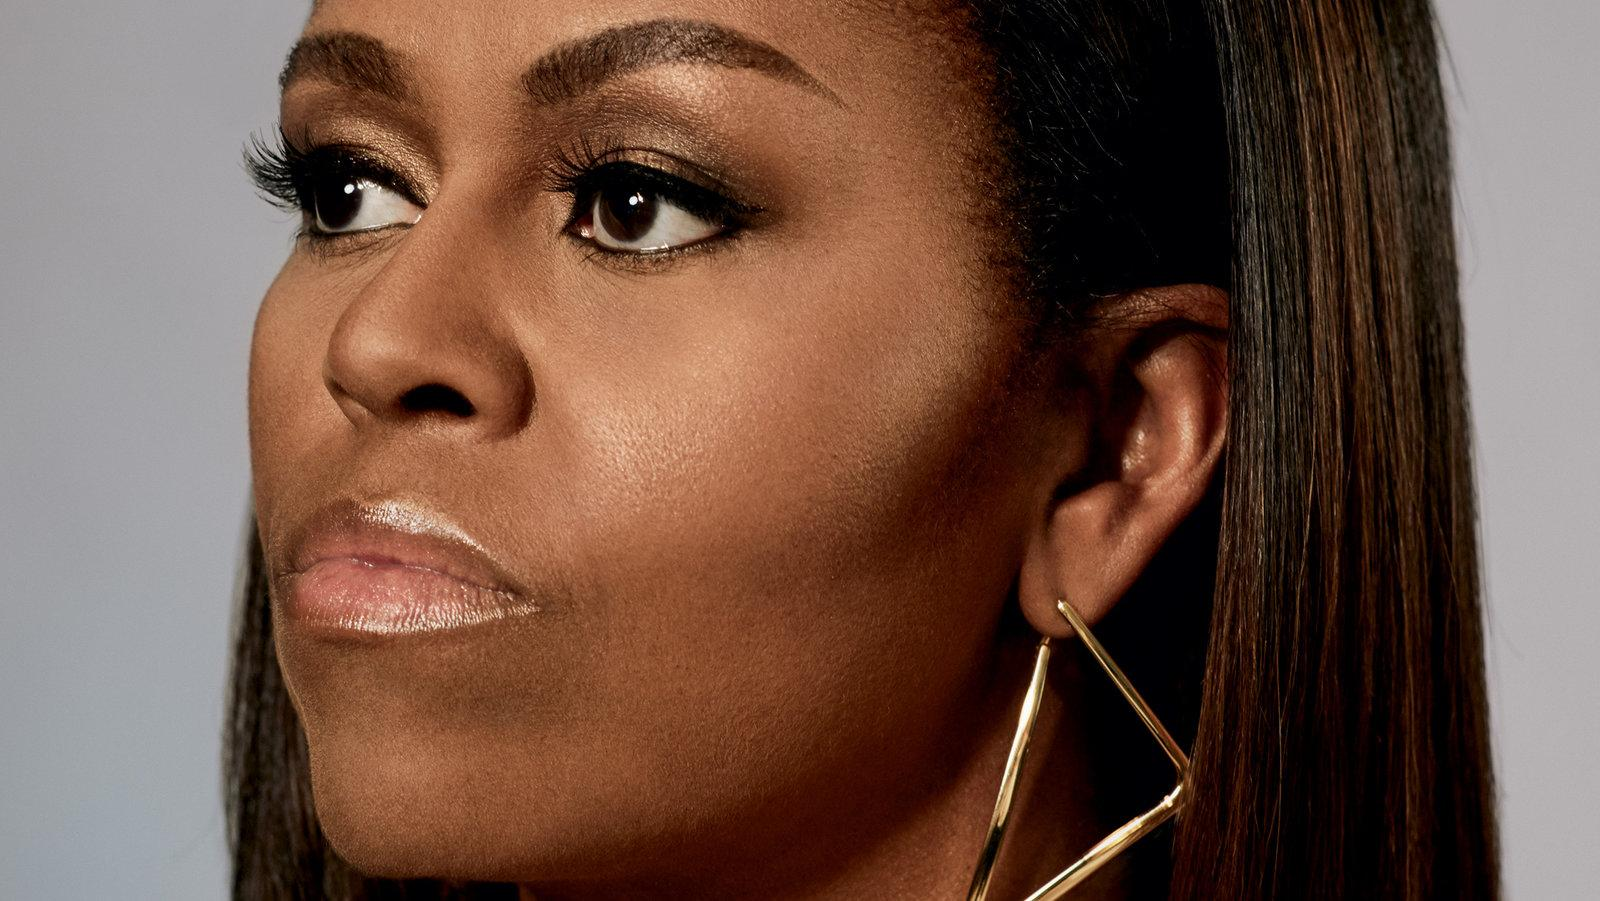 Michelle Obama Gets Candid About The 'Exhausting' Racism She Experienced Even While At The White House